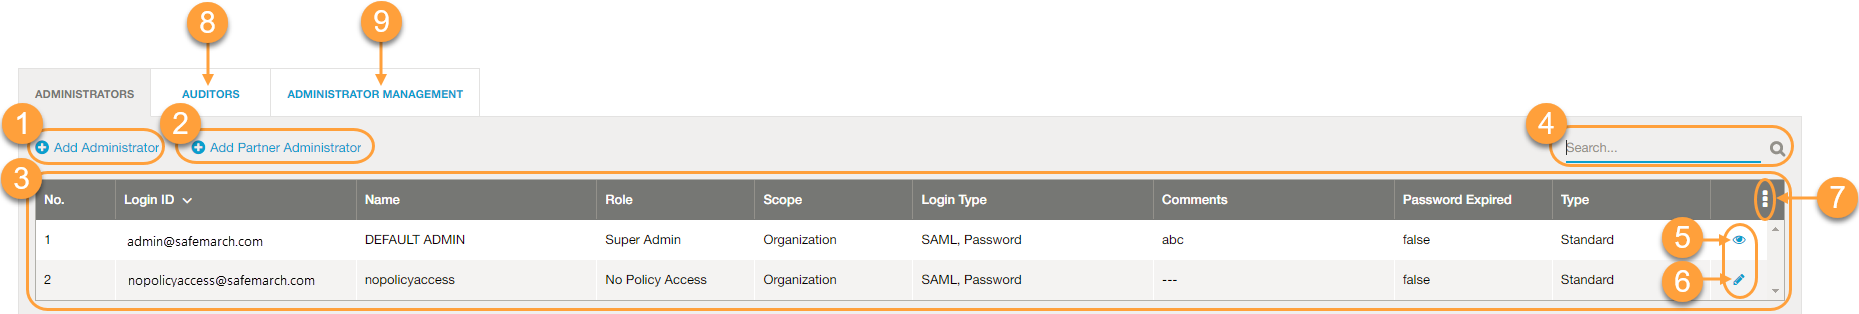 Screenshot labelled with numbers showing the various features of the administrator page